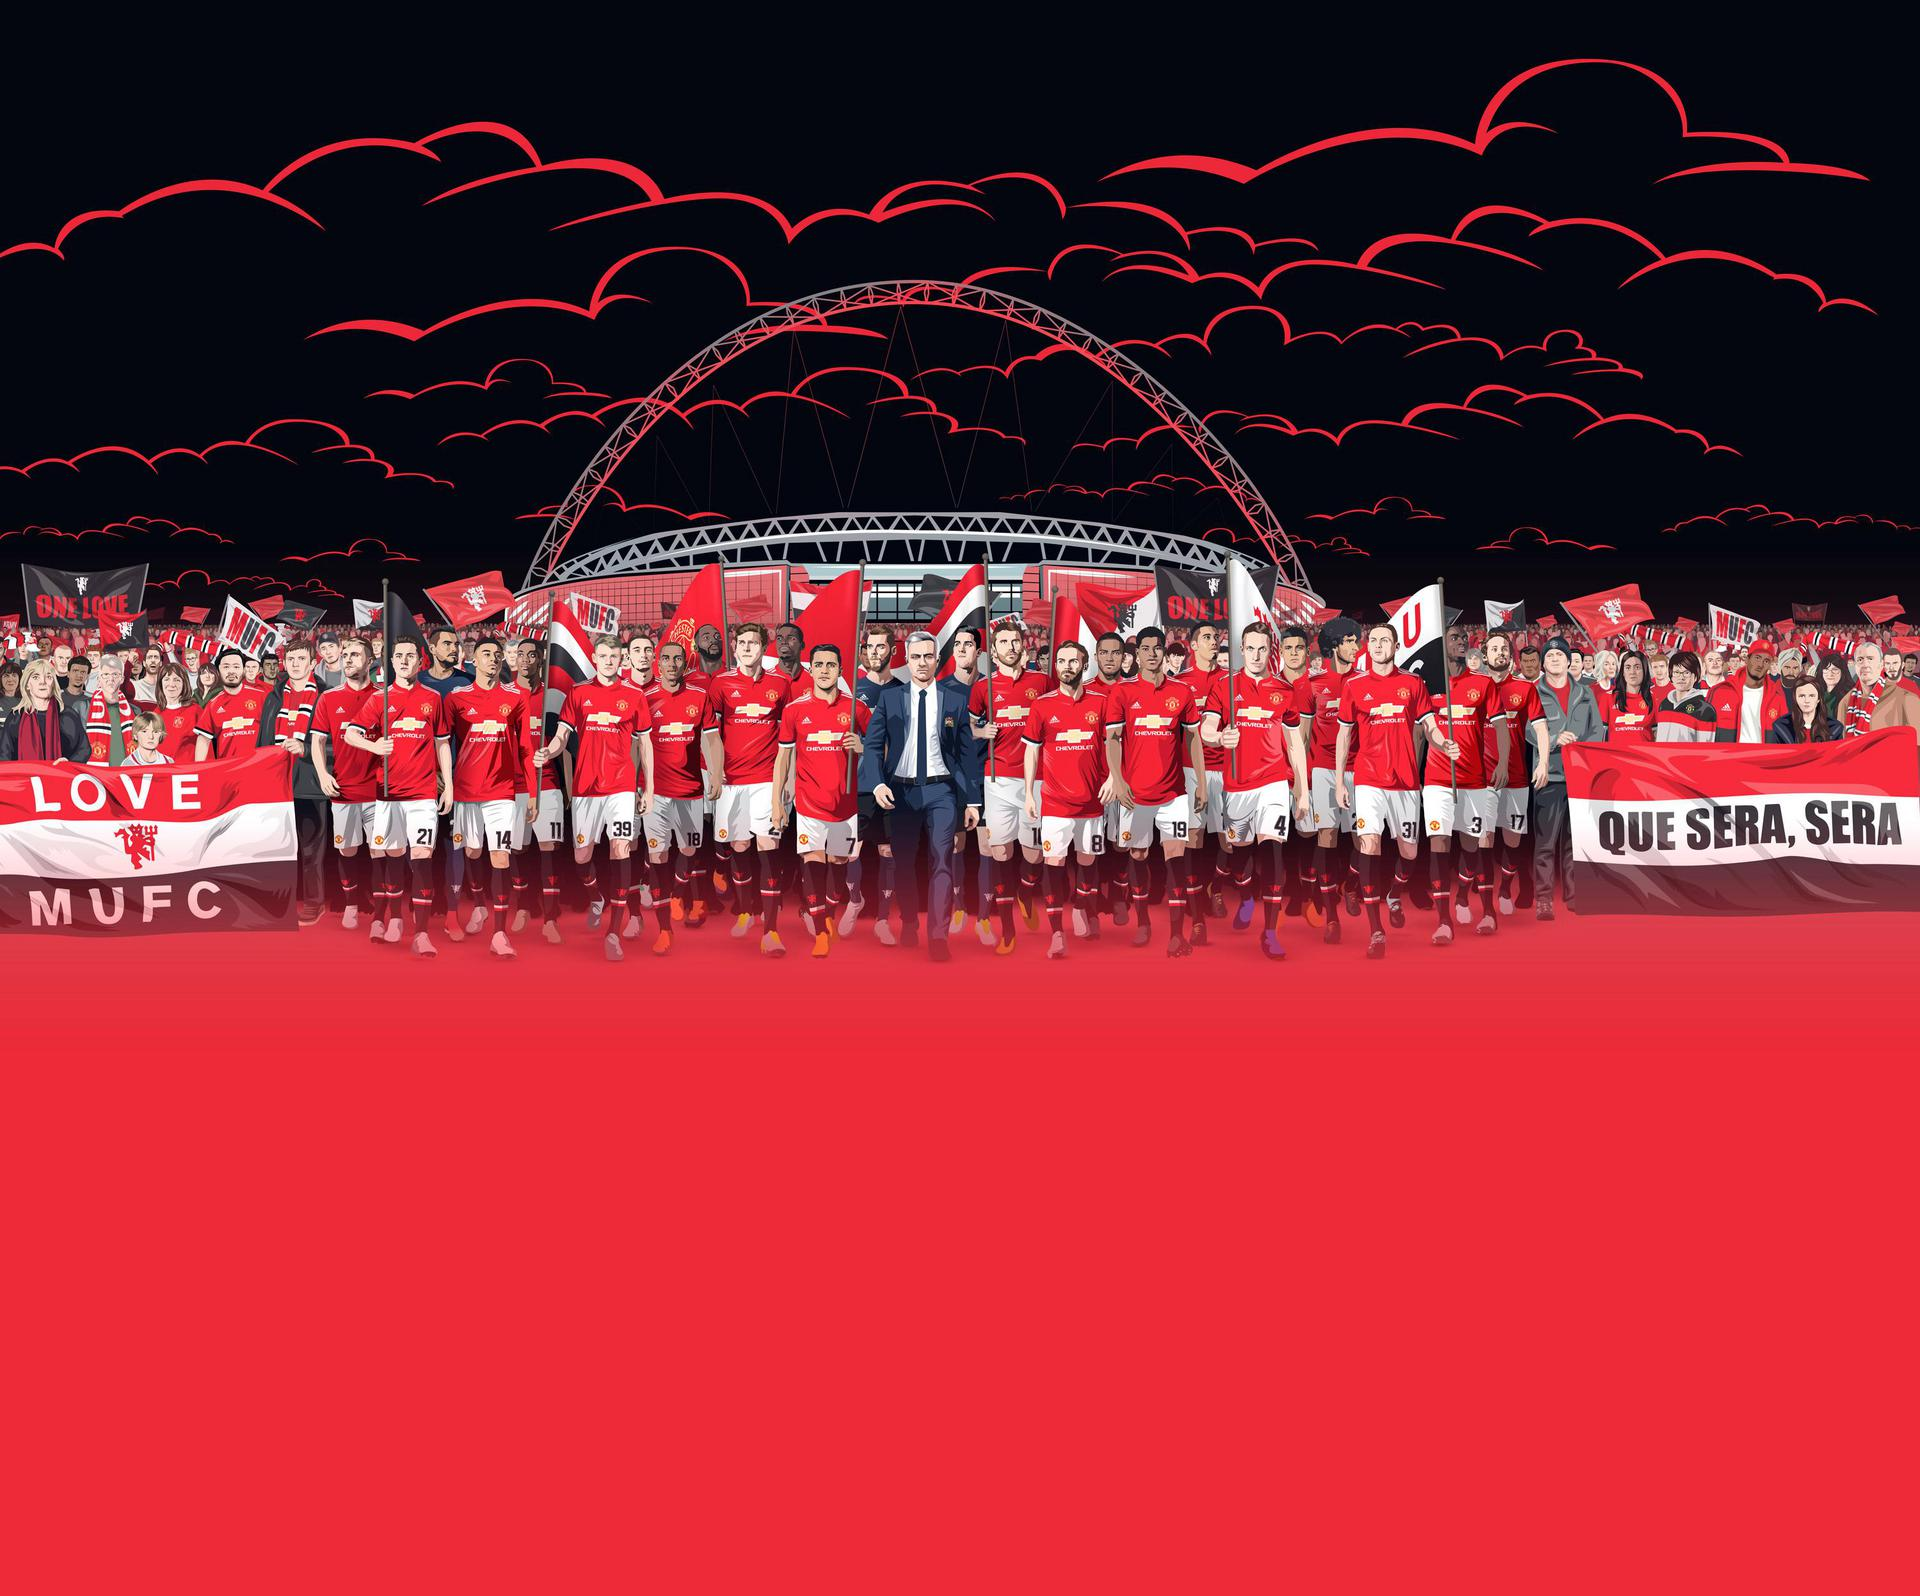 A designed image for the 2018 Emirates FA Cup final, featuring United players and fans in front of Wembley Stadium